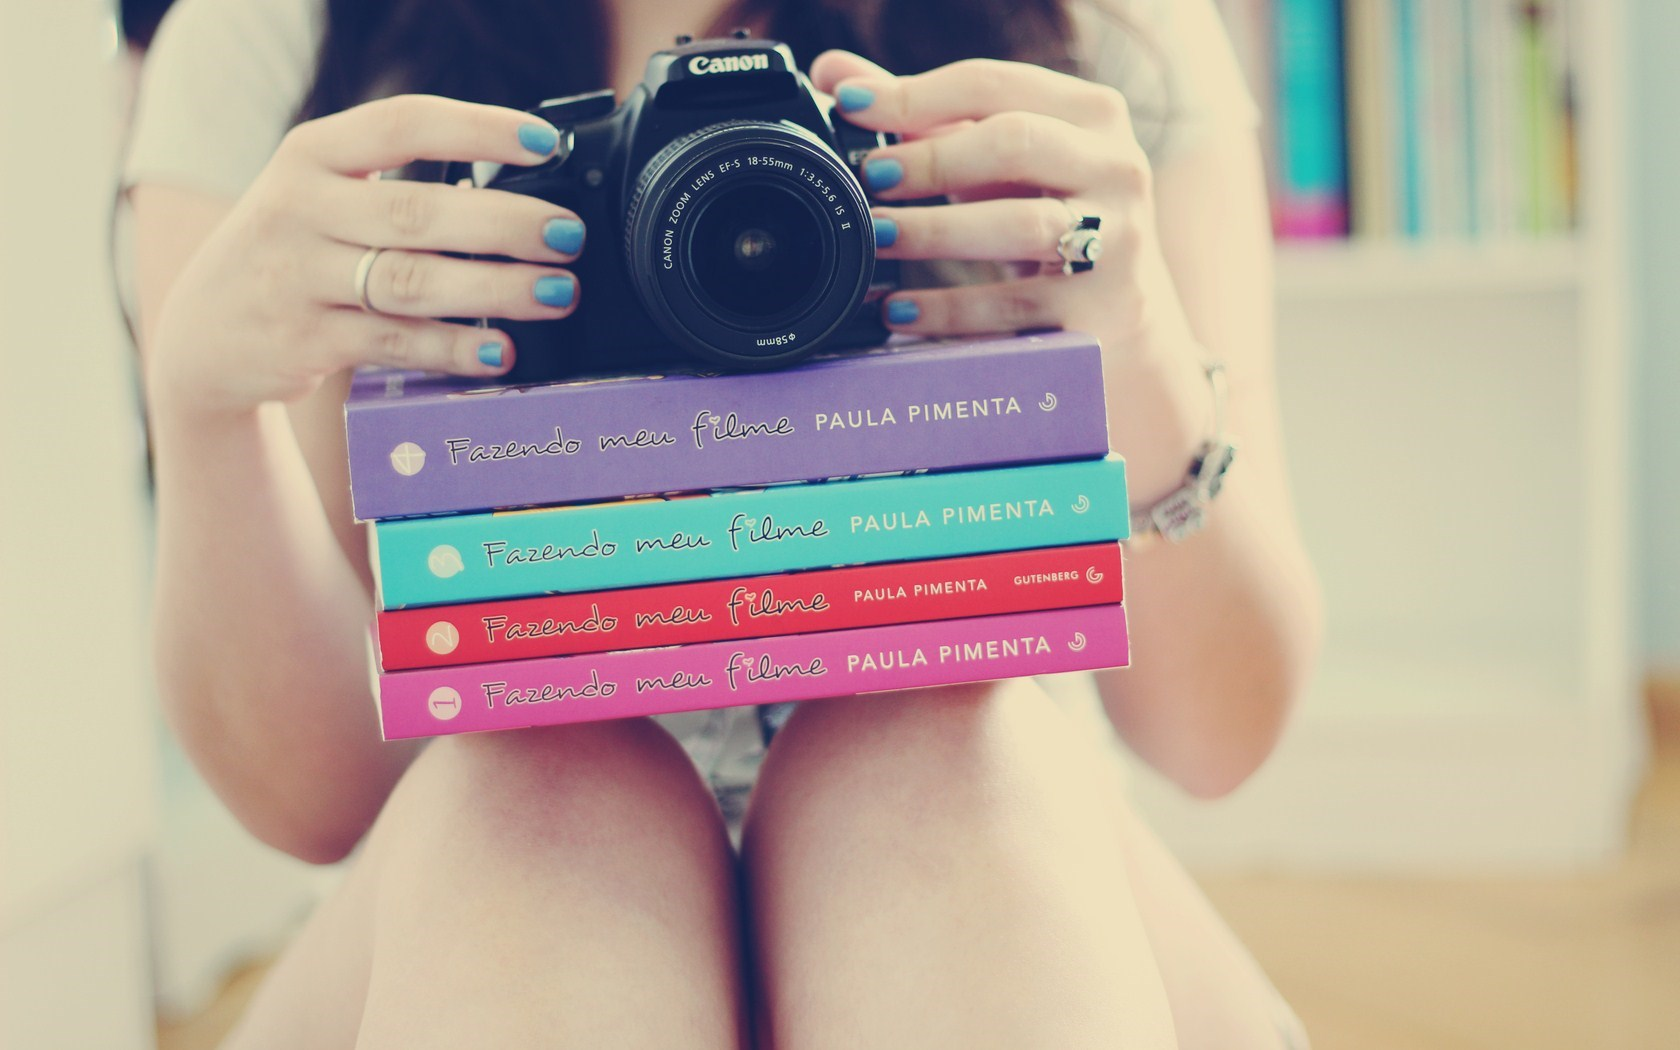 stack-of-books-girl-canon-dslr-camera-blue-nails-hd-wallpaper